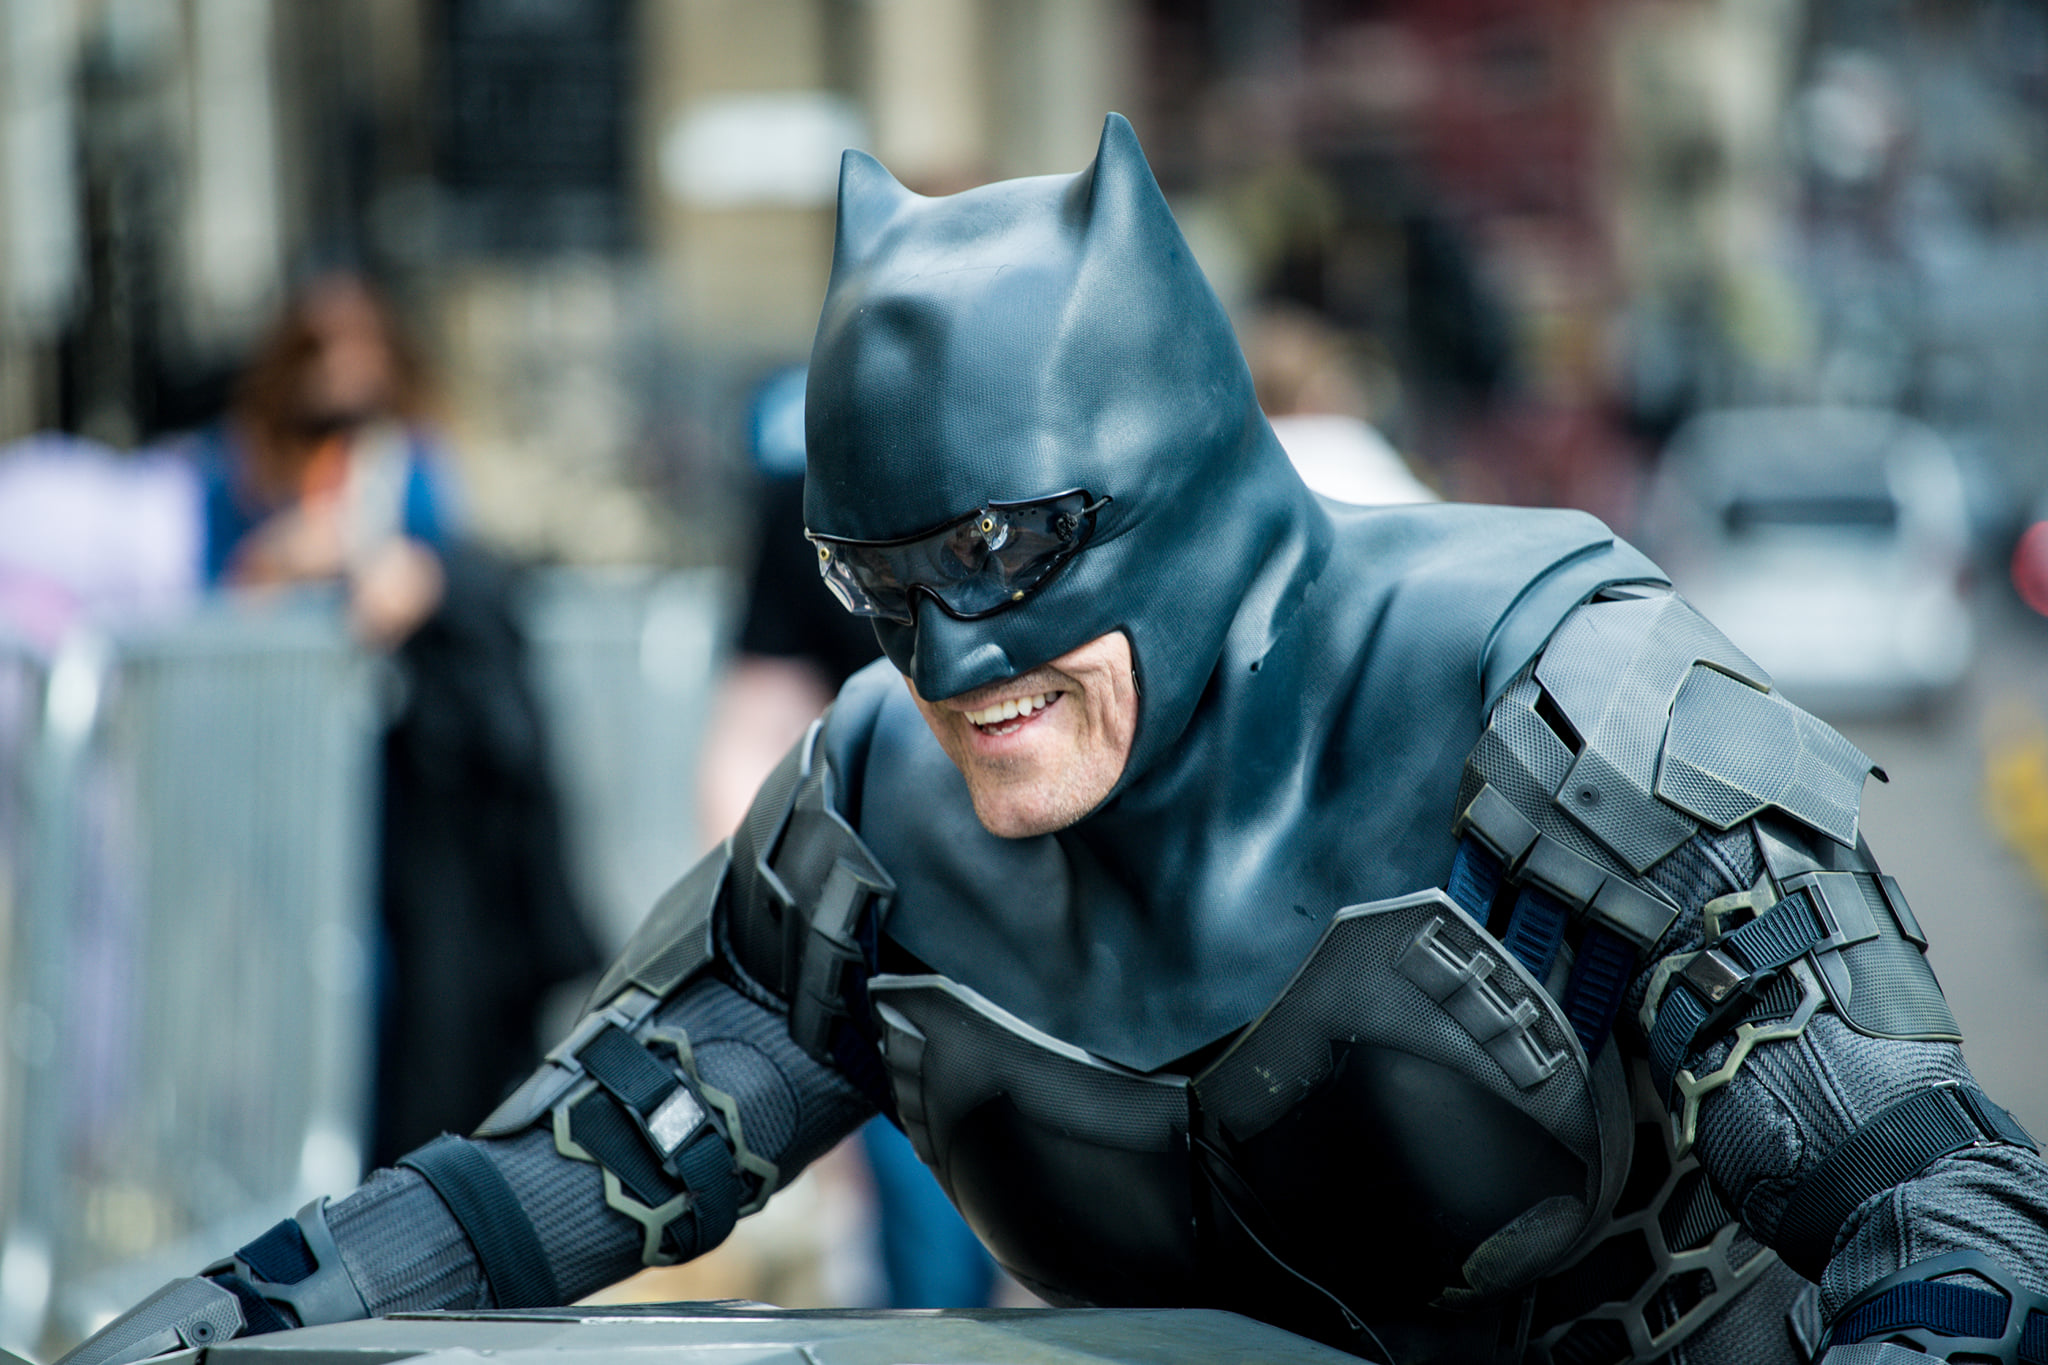 Incredible images show Batman SMILING during The Flash Filming in Glasgow - and he looks like Ben Affleck